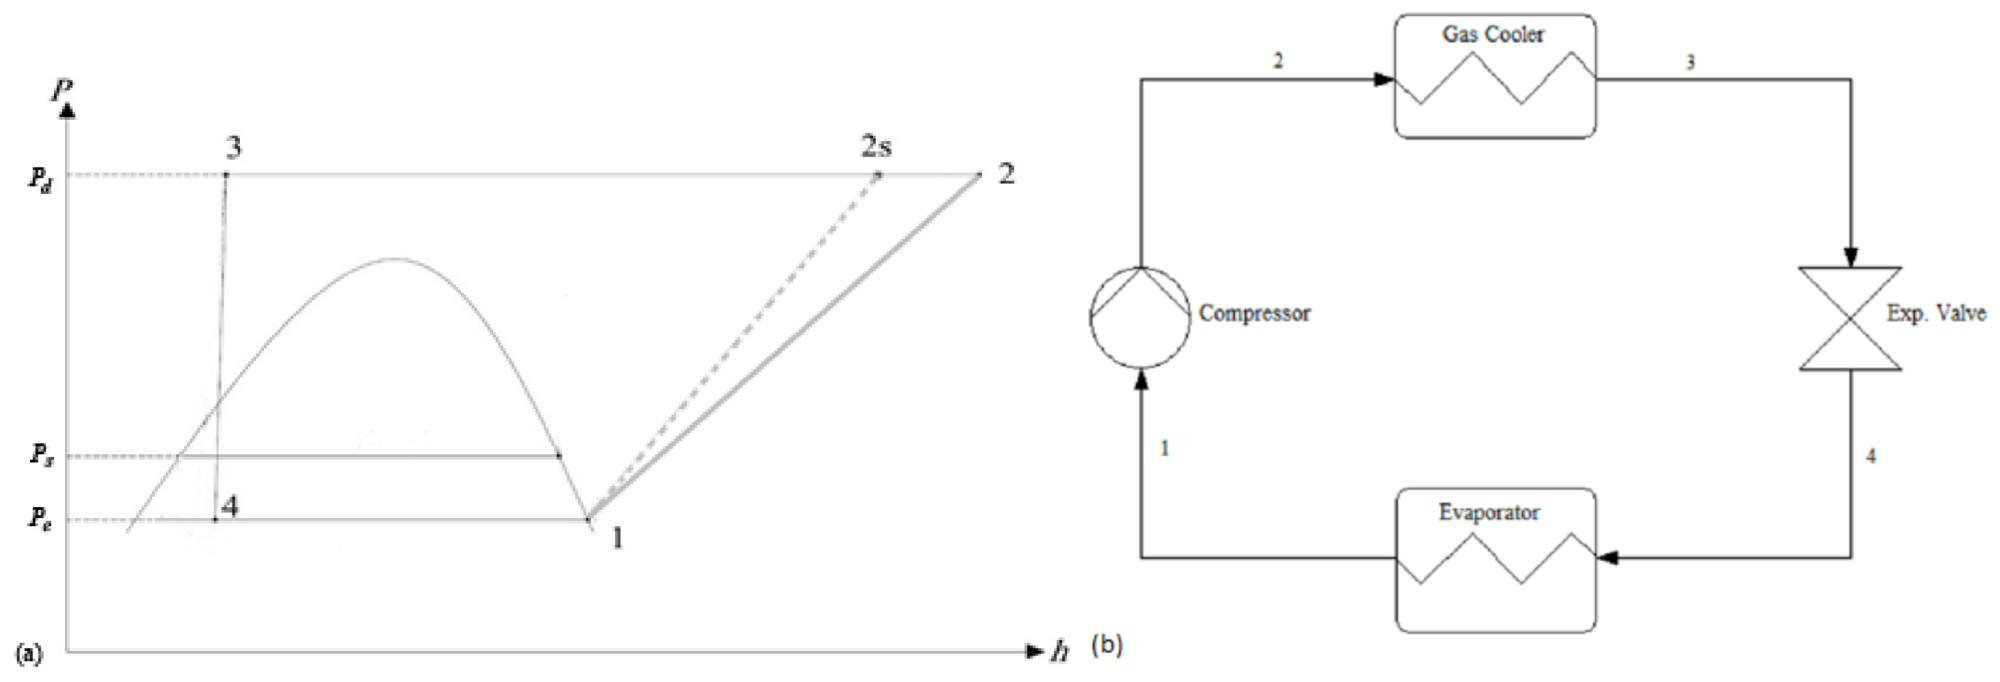 hight resolution of  schematic of the vapor compression refrigeration cycle and the internal heat exchanger cycle sustainability 10 01177 g002